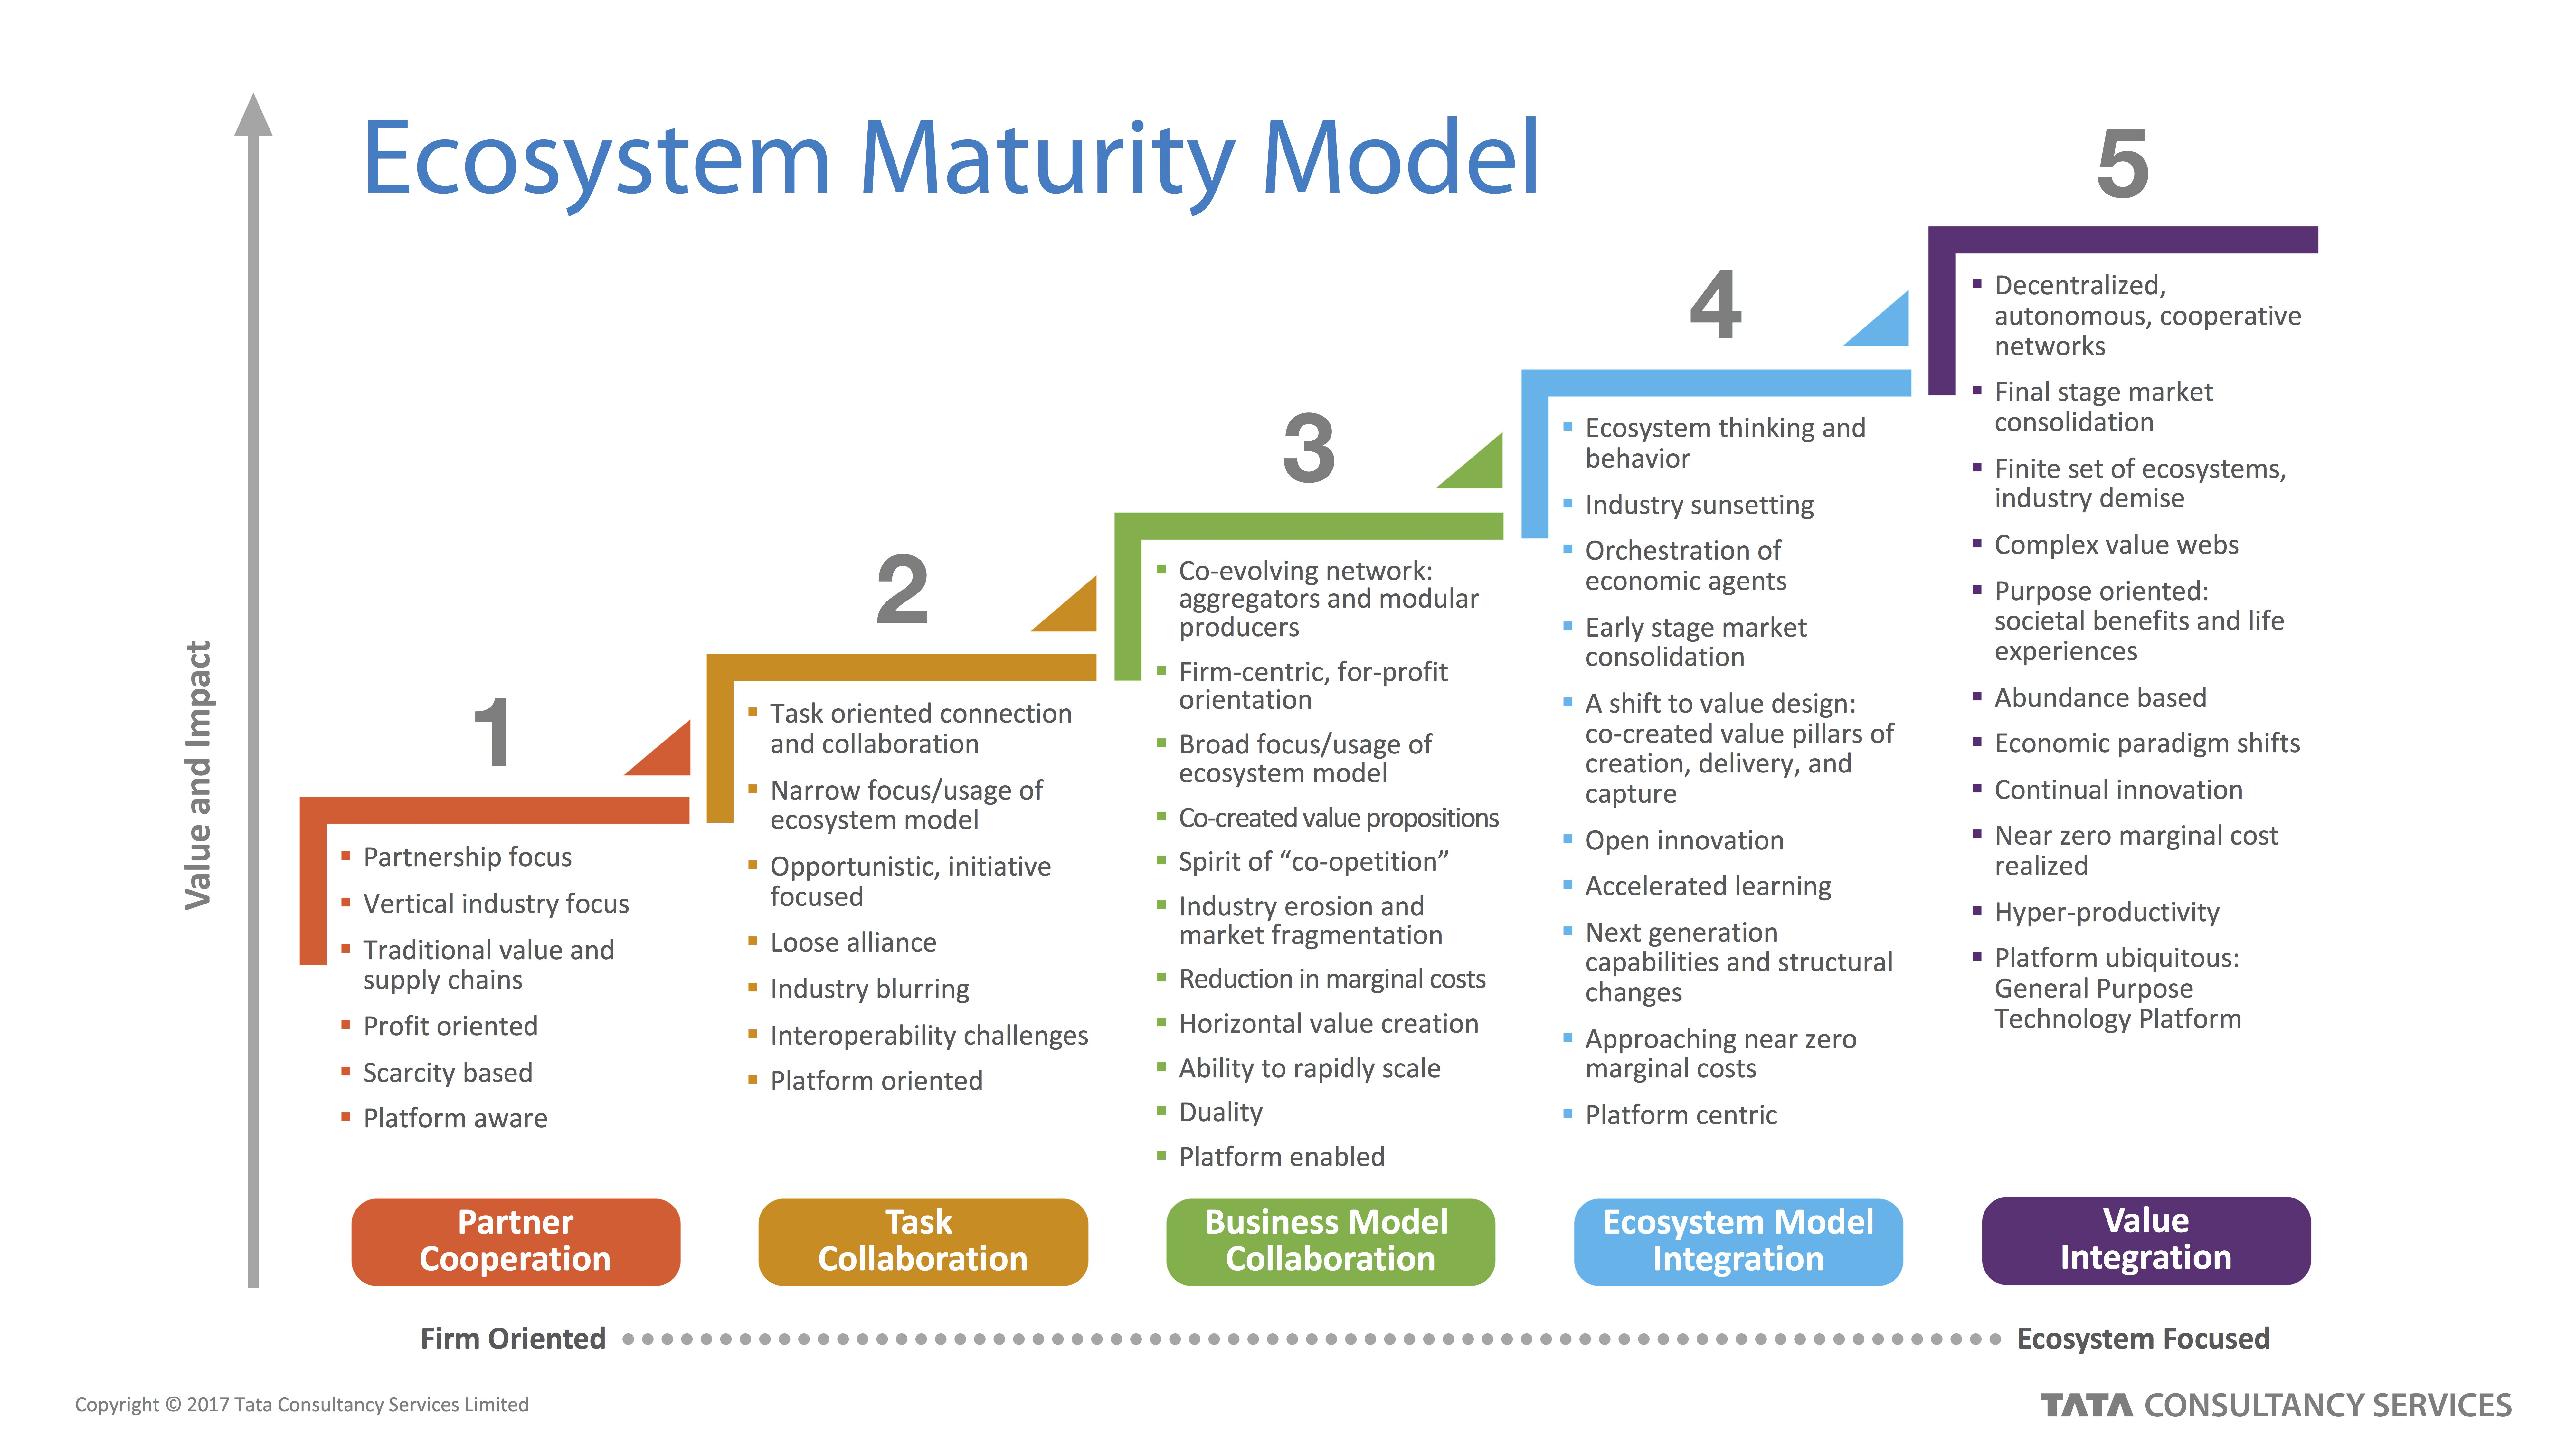 Ecosystem maturity model in my previous post on the